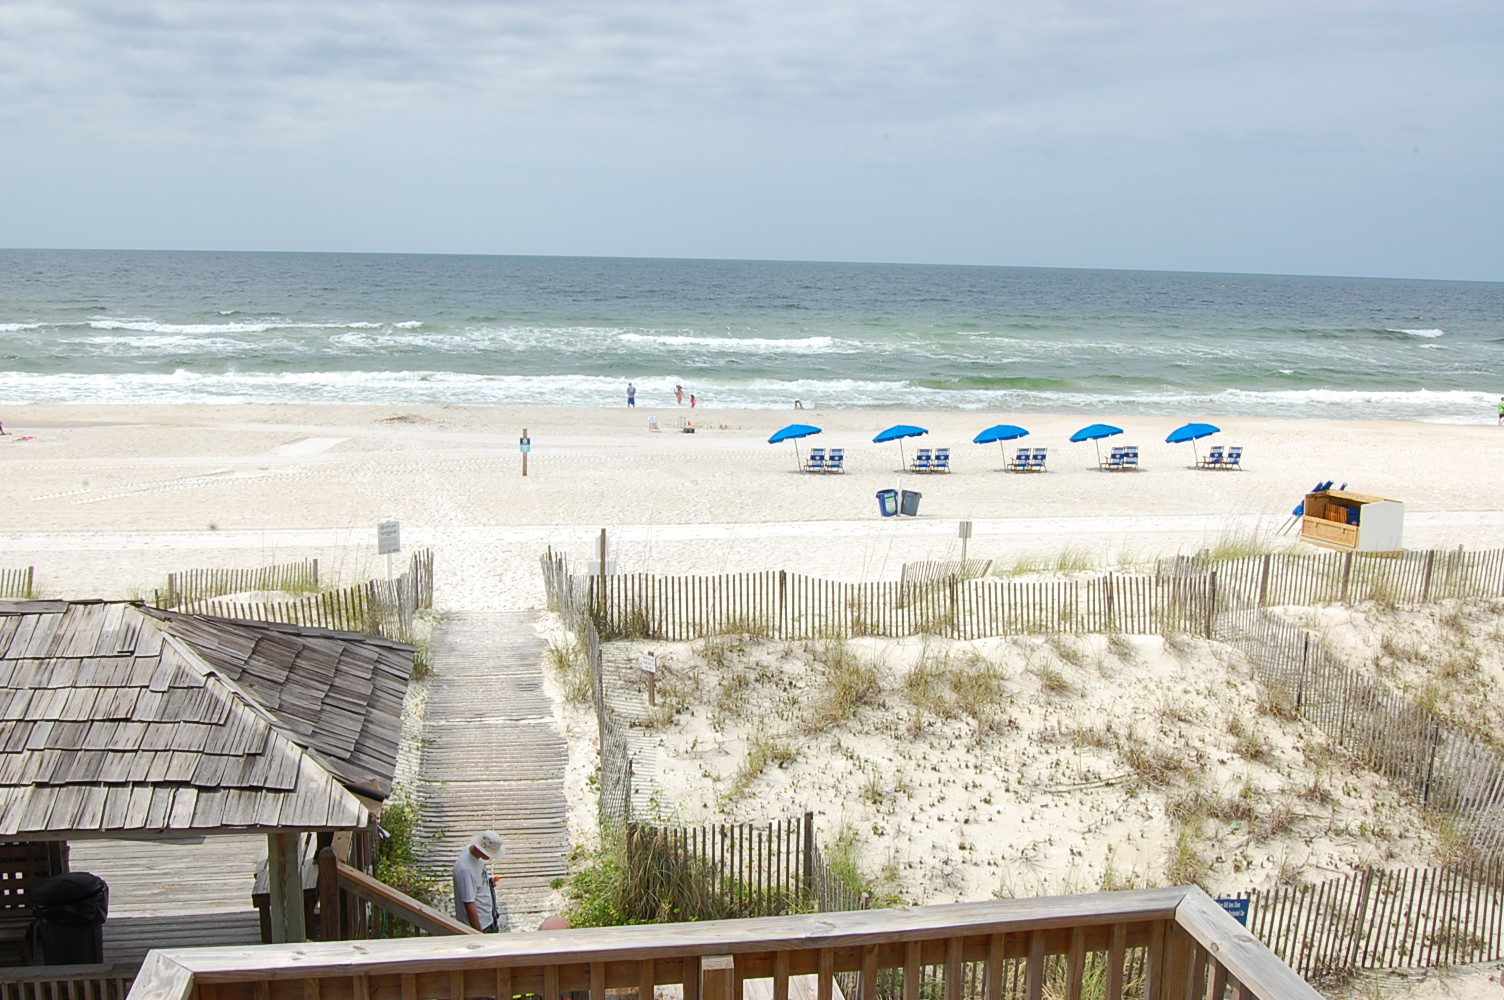 Beach Front 301 Condo rental in The Beach Front Condomiums  in Gulf Shores Alabama - #2